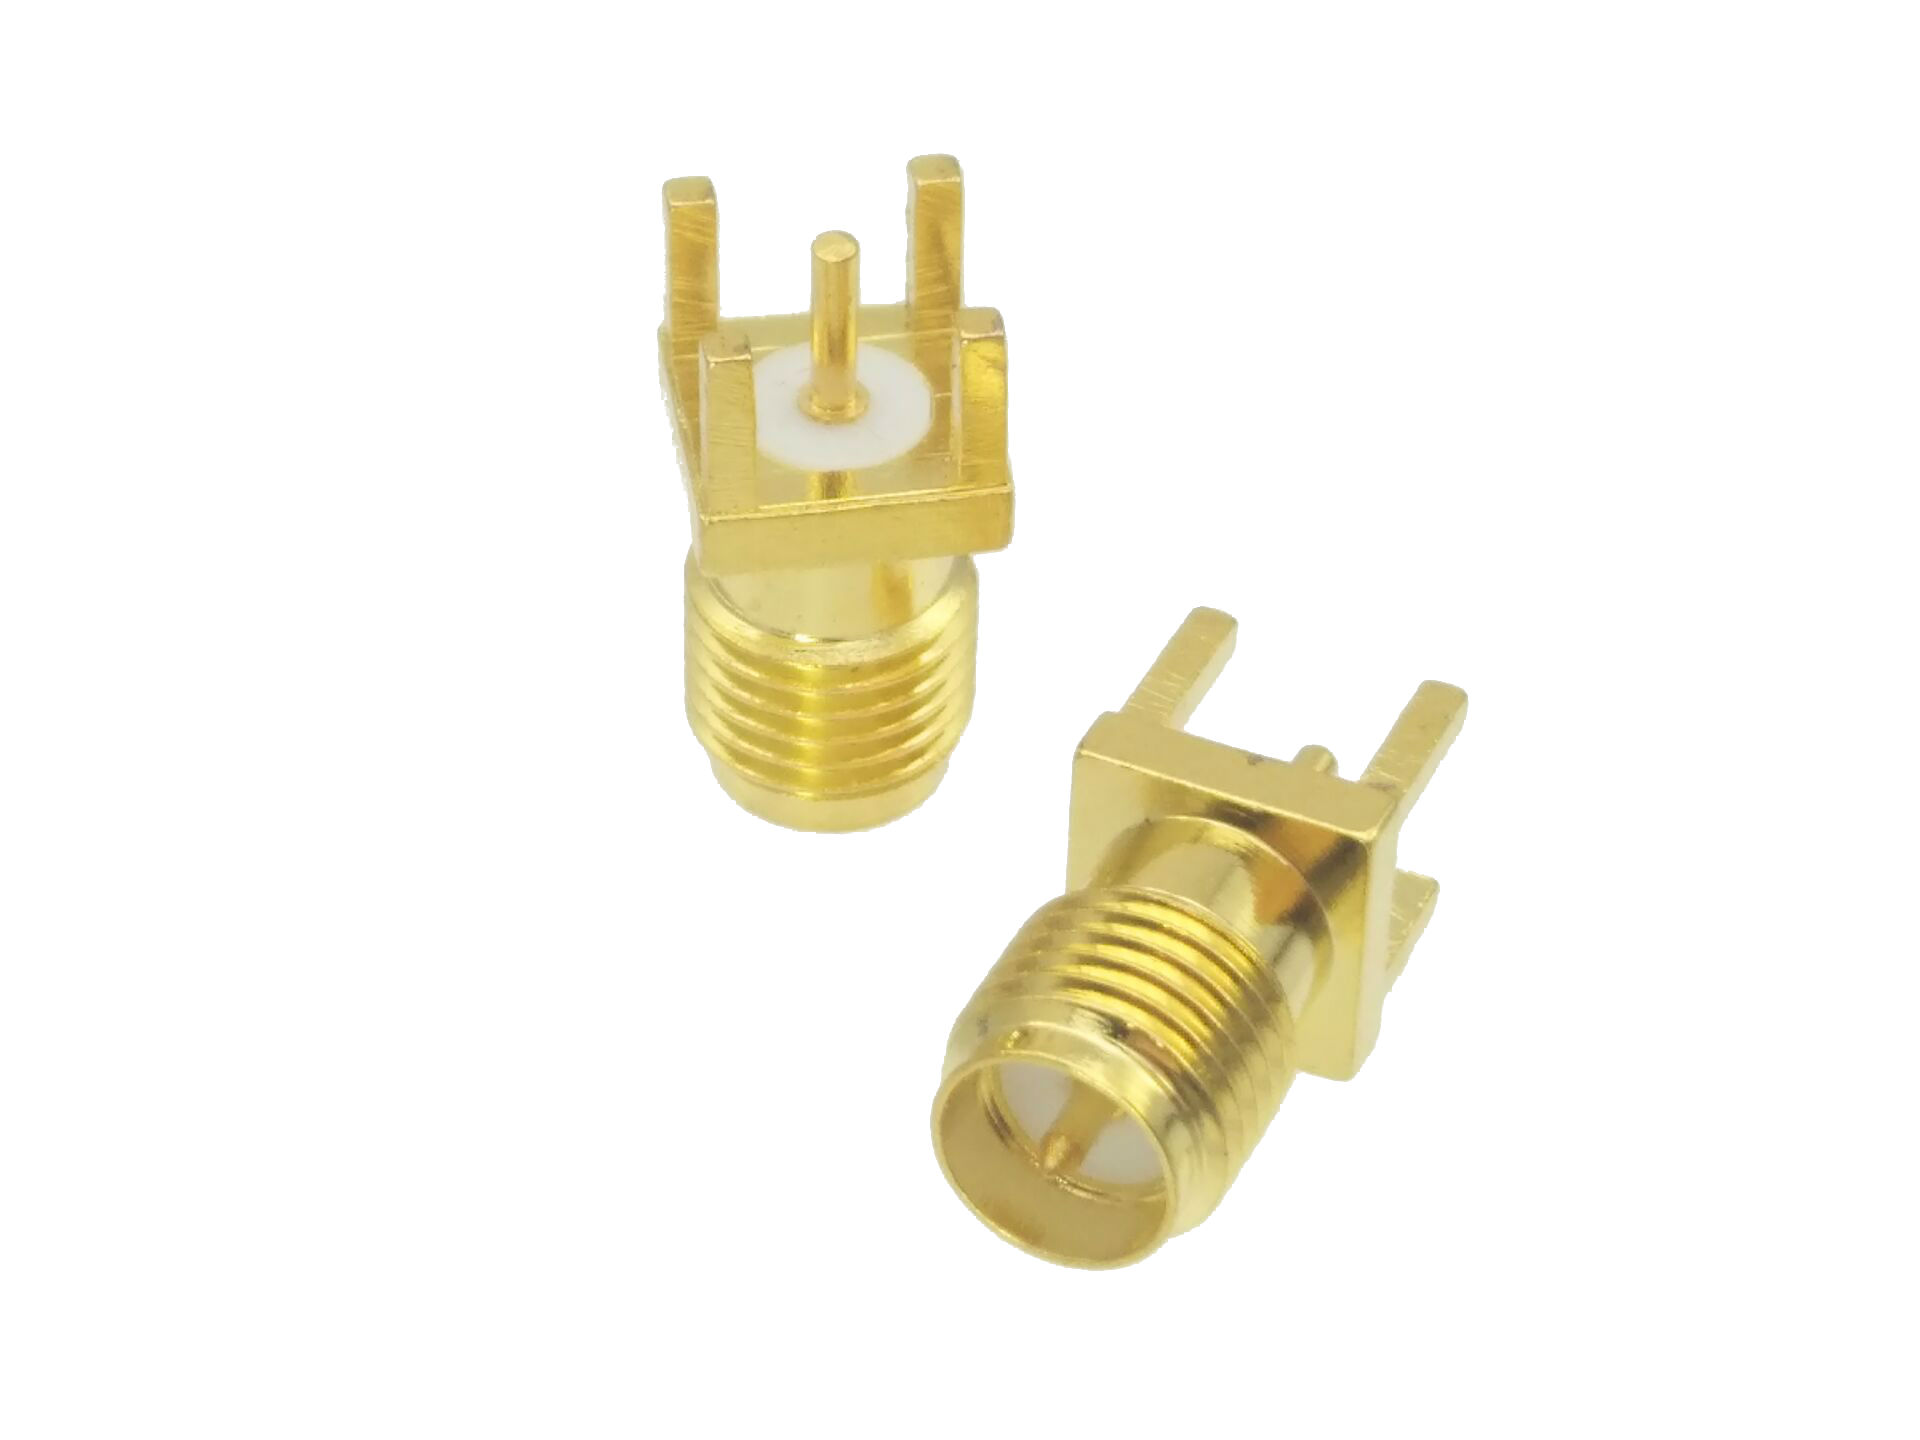 Connector RP.SMA RP-SMA Female Plug Solder PCB Mount Straight 5.08mm RF Coaxial